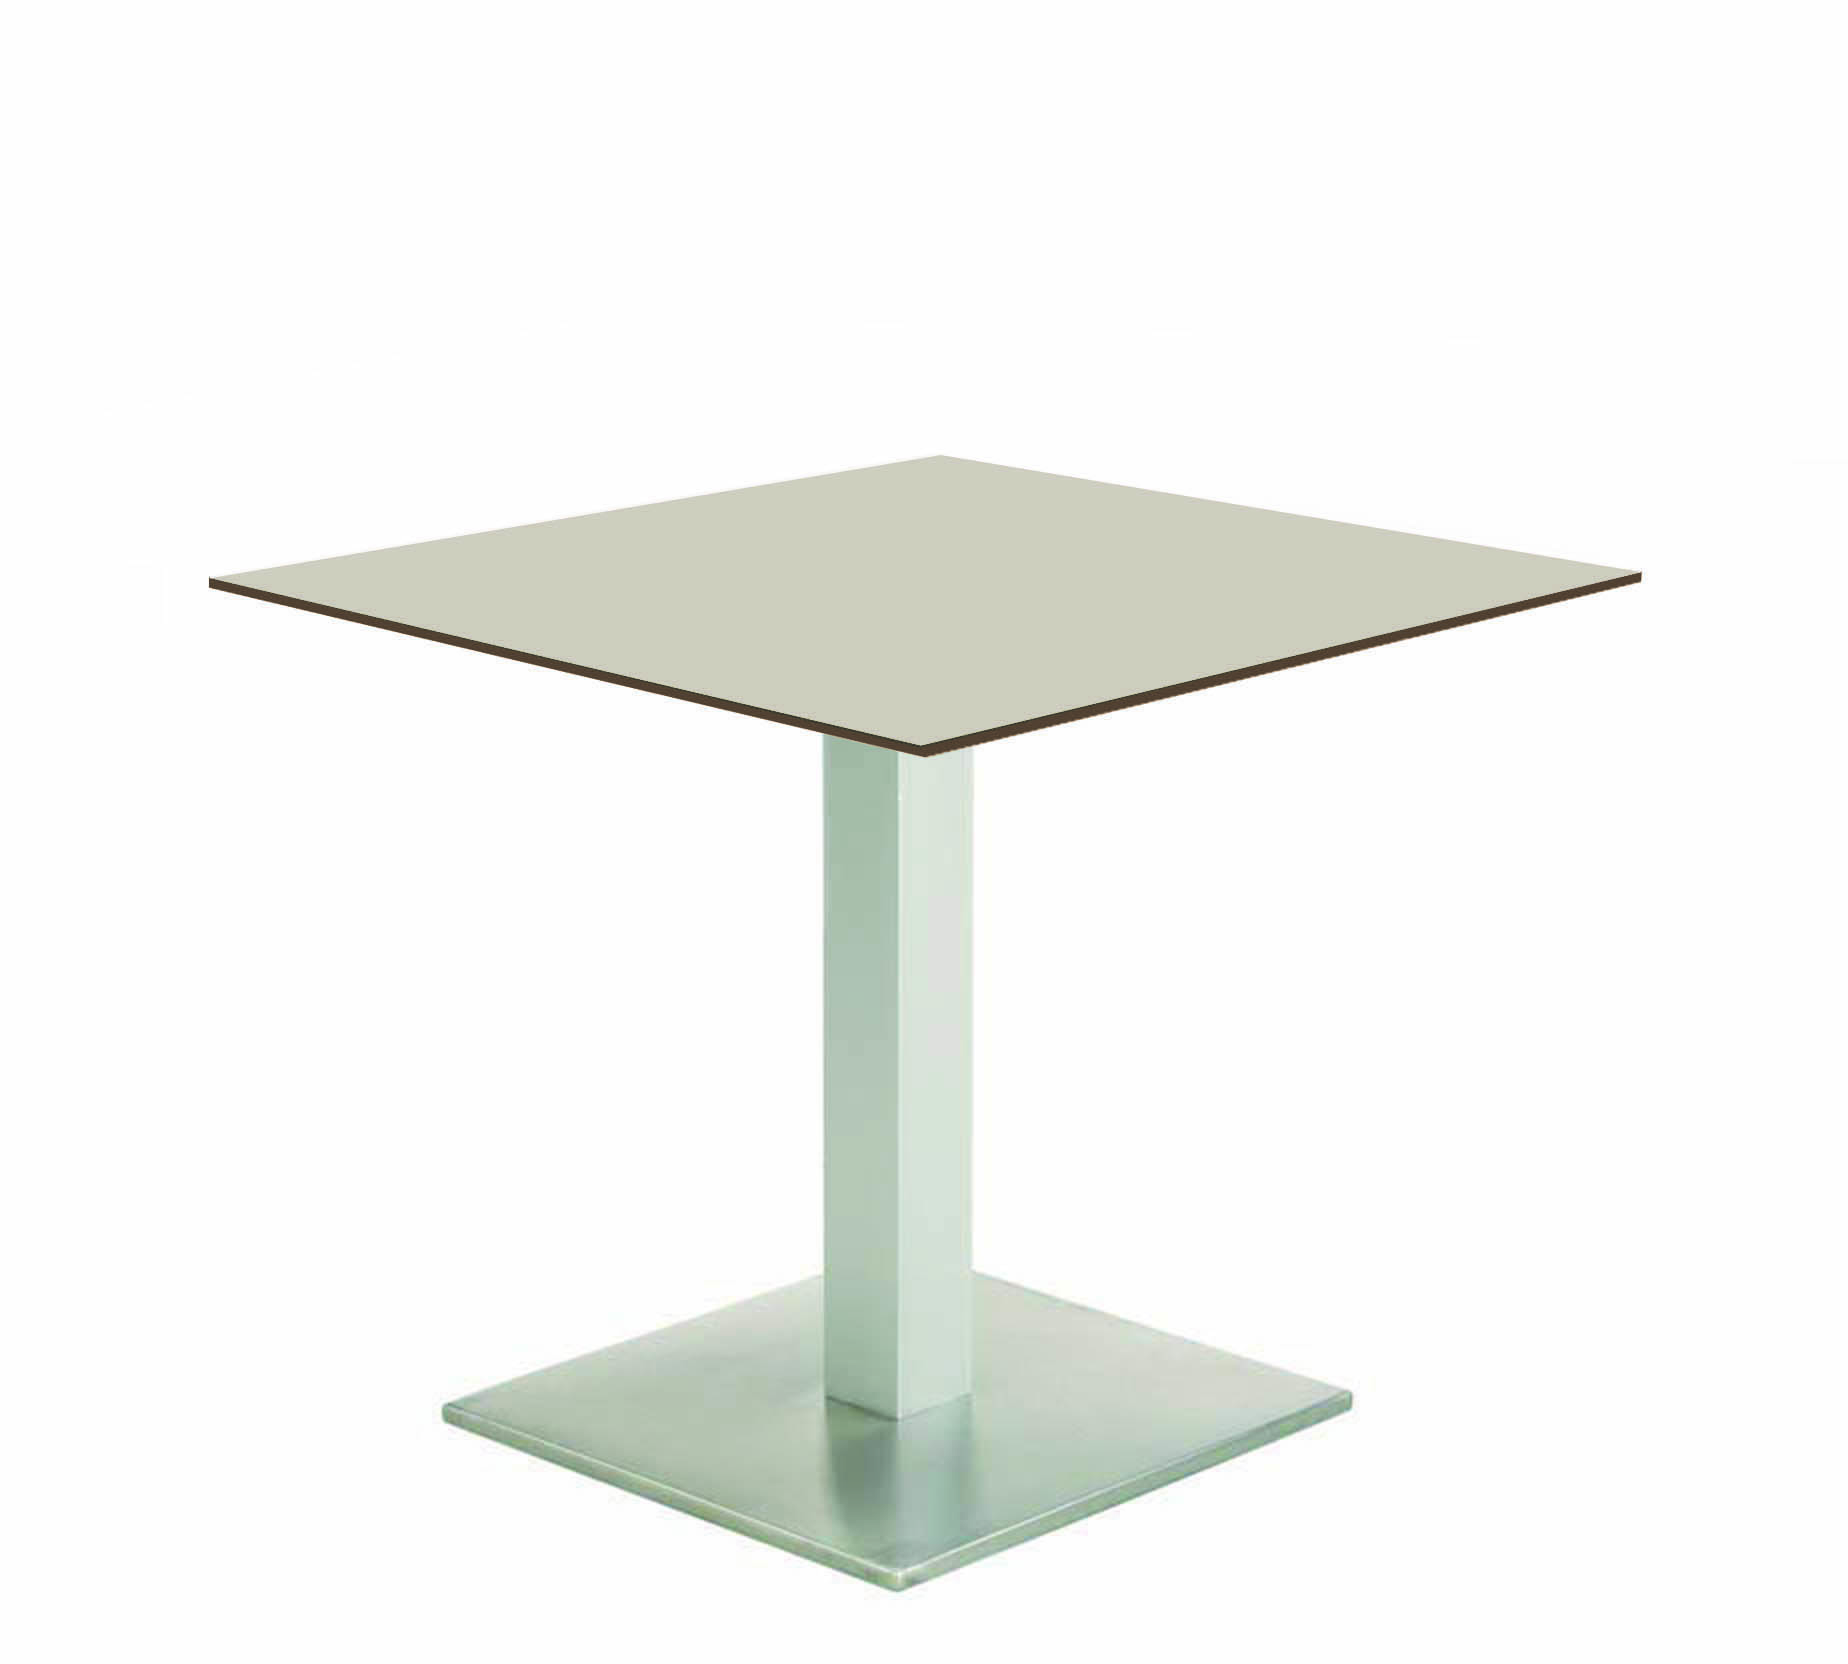 <p>Outdoor Furniture Contemporary Collection – Toro Commercial Dining Table – Single Pedestal.</p> <p> </p> <p>Table for indoor and outdoor use. Combine with chairs/stools of your choice.</p> <p> </p> <p>Adaptable to any environment being designed by architects. Captures essential features such as elegance lightness, functionality, ergonomics and care for the environment</p>